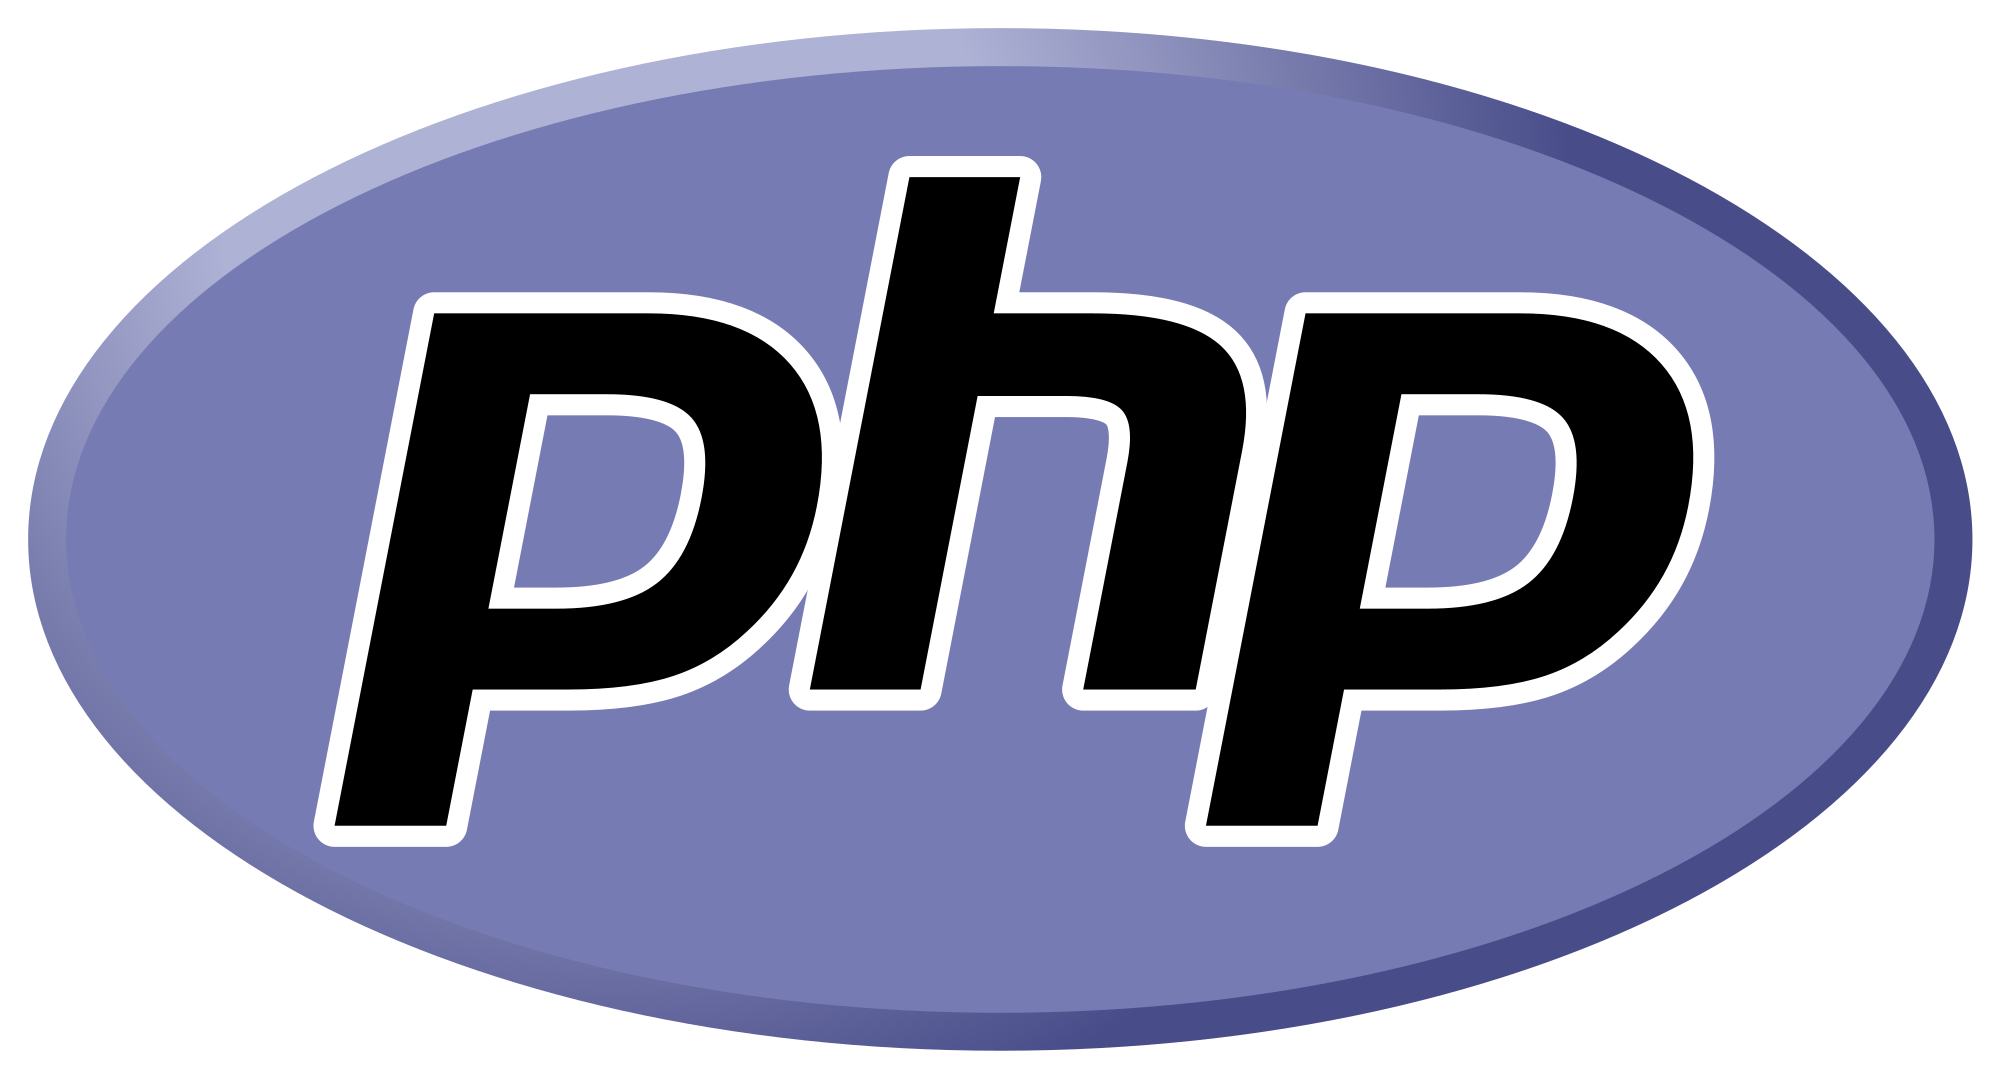 php image png